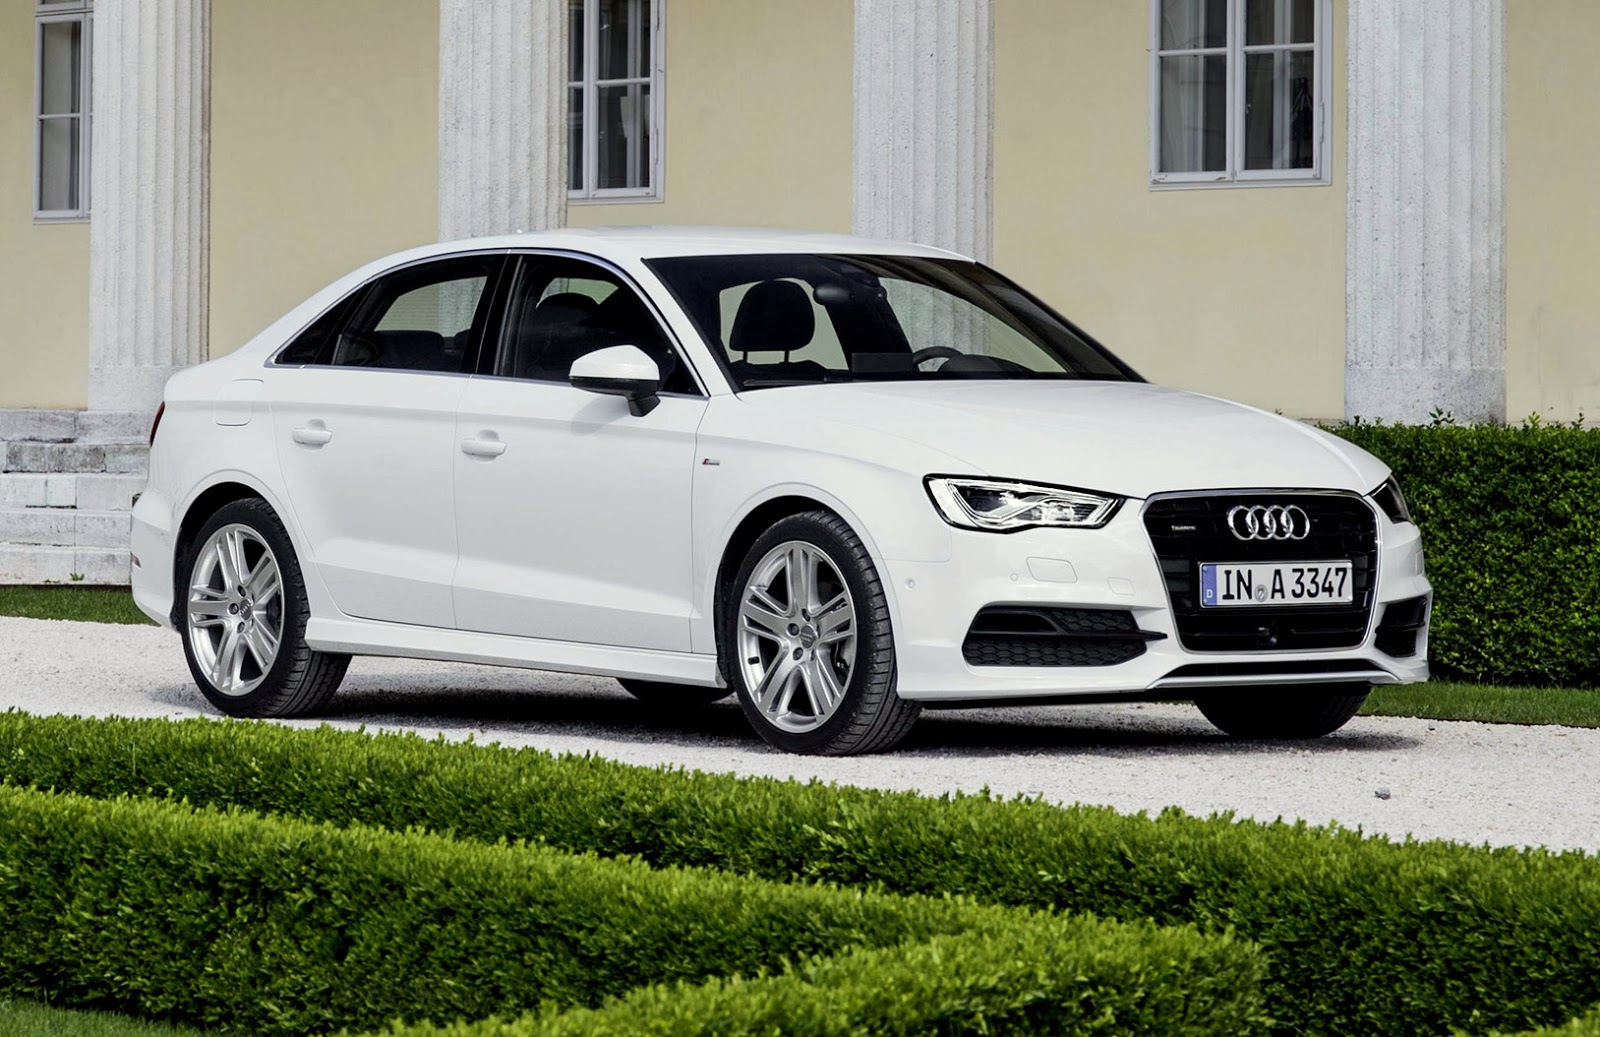 audi announces 2015 a3 sedan pricing and equipment w video. Black Bedroom Furniture Sets. Home Design Ideas